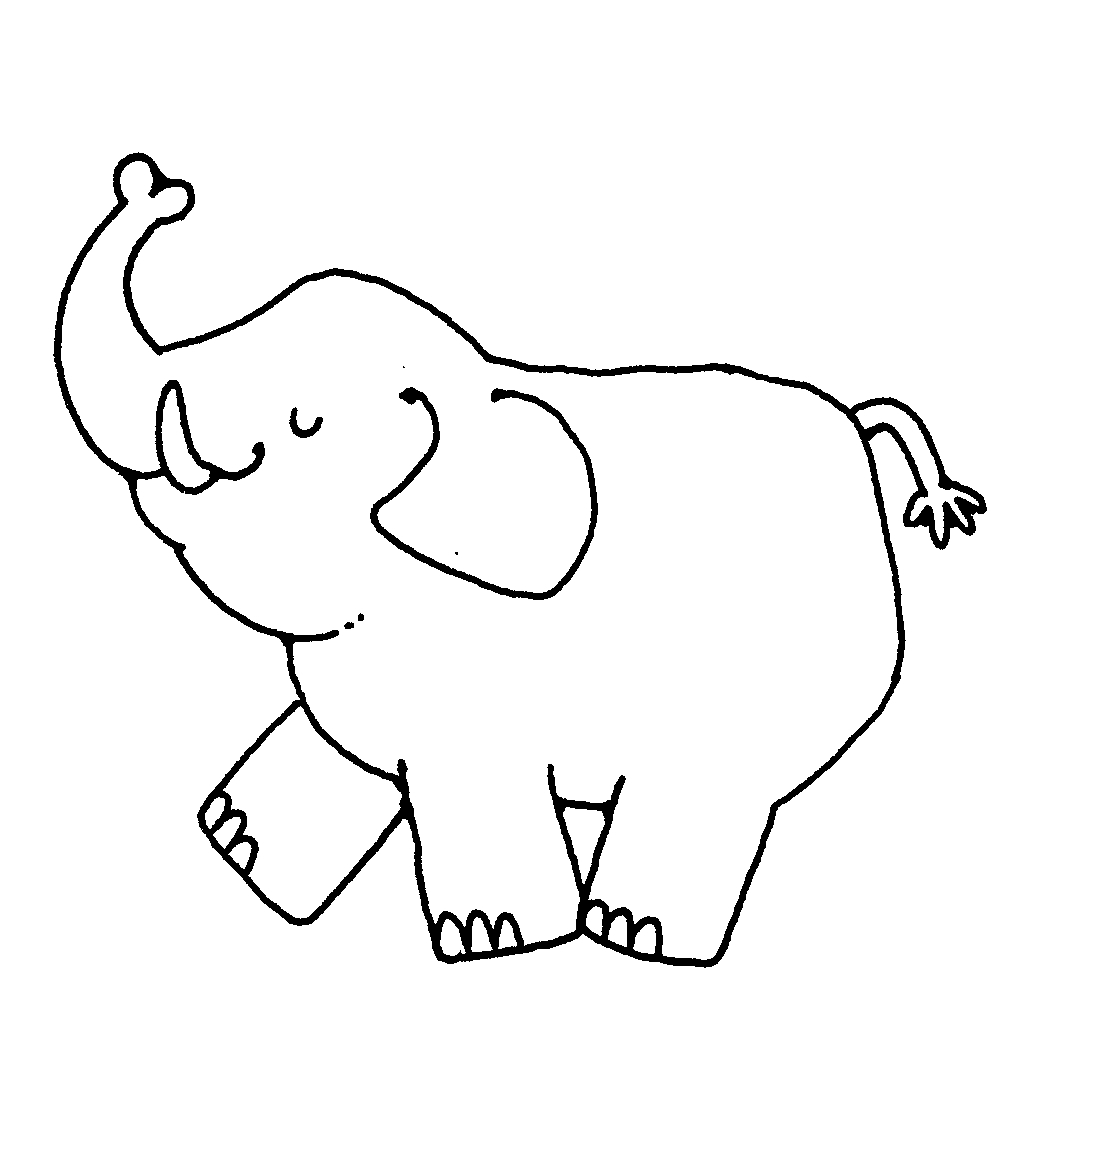 Images For Black And White Elephant Clip-Images For Black And White Elephant Clipart-15